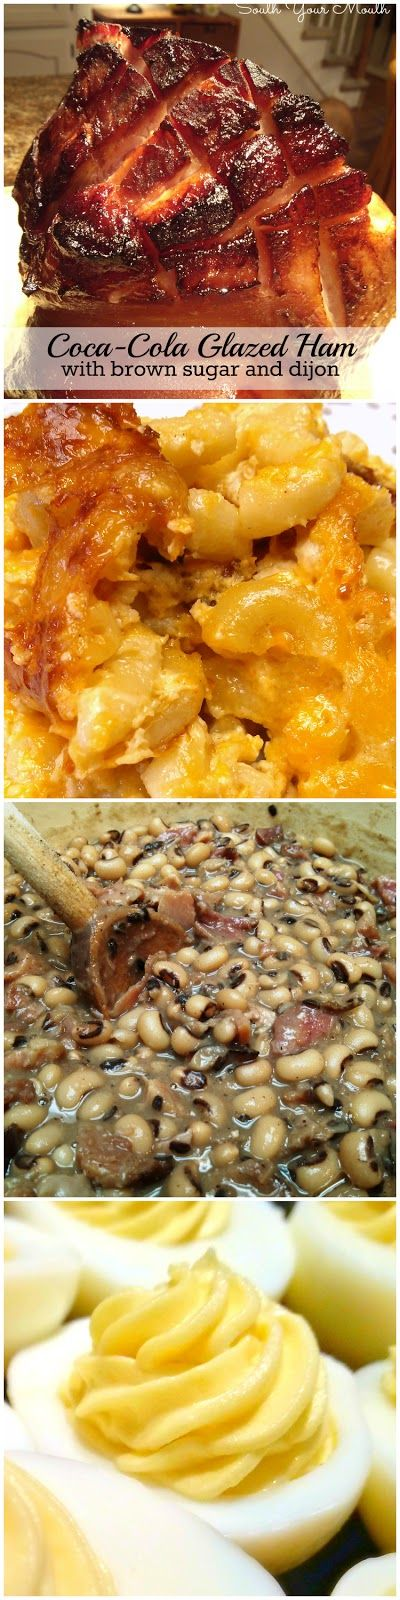 Southern Christmas Dinner Recipes: Coca-Cola Glazed Ham, Macaroni & Cheese, Black-eyed, Southern-Style Coleslaw, Sweet Potato Praline Casserole, Greasy Rice, Deviled Eggs, Cheese Muffins, Perfect Cheesecake, Pistachio Cake & Eggnog Pie